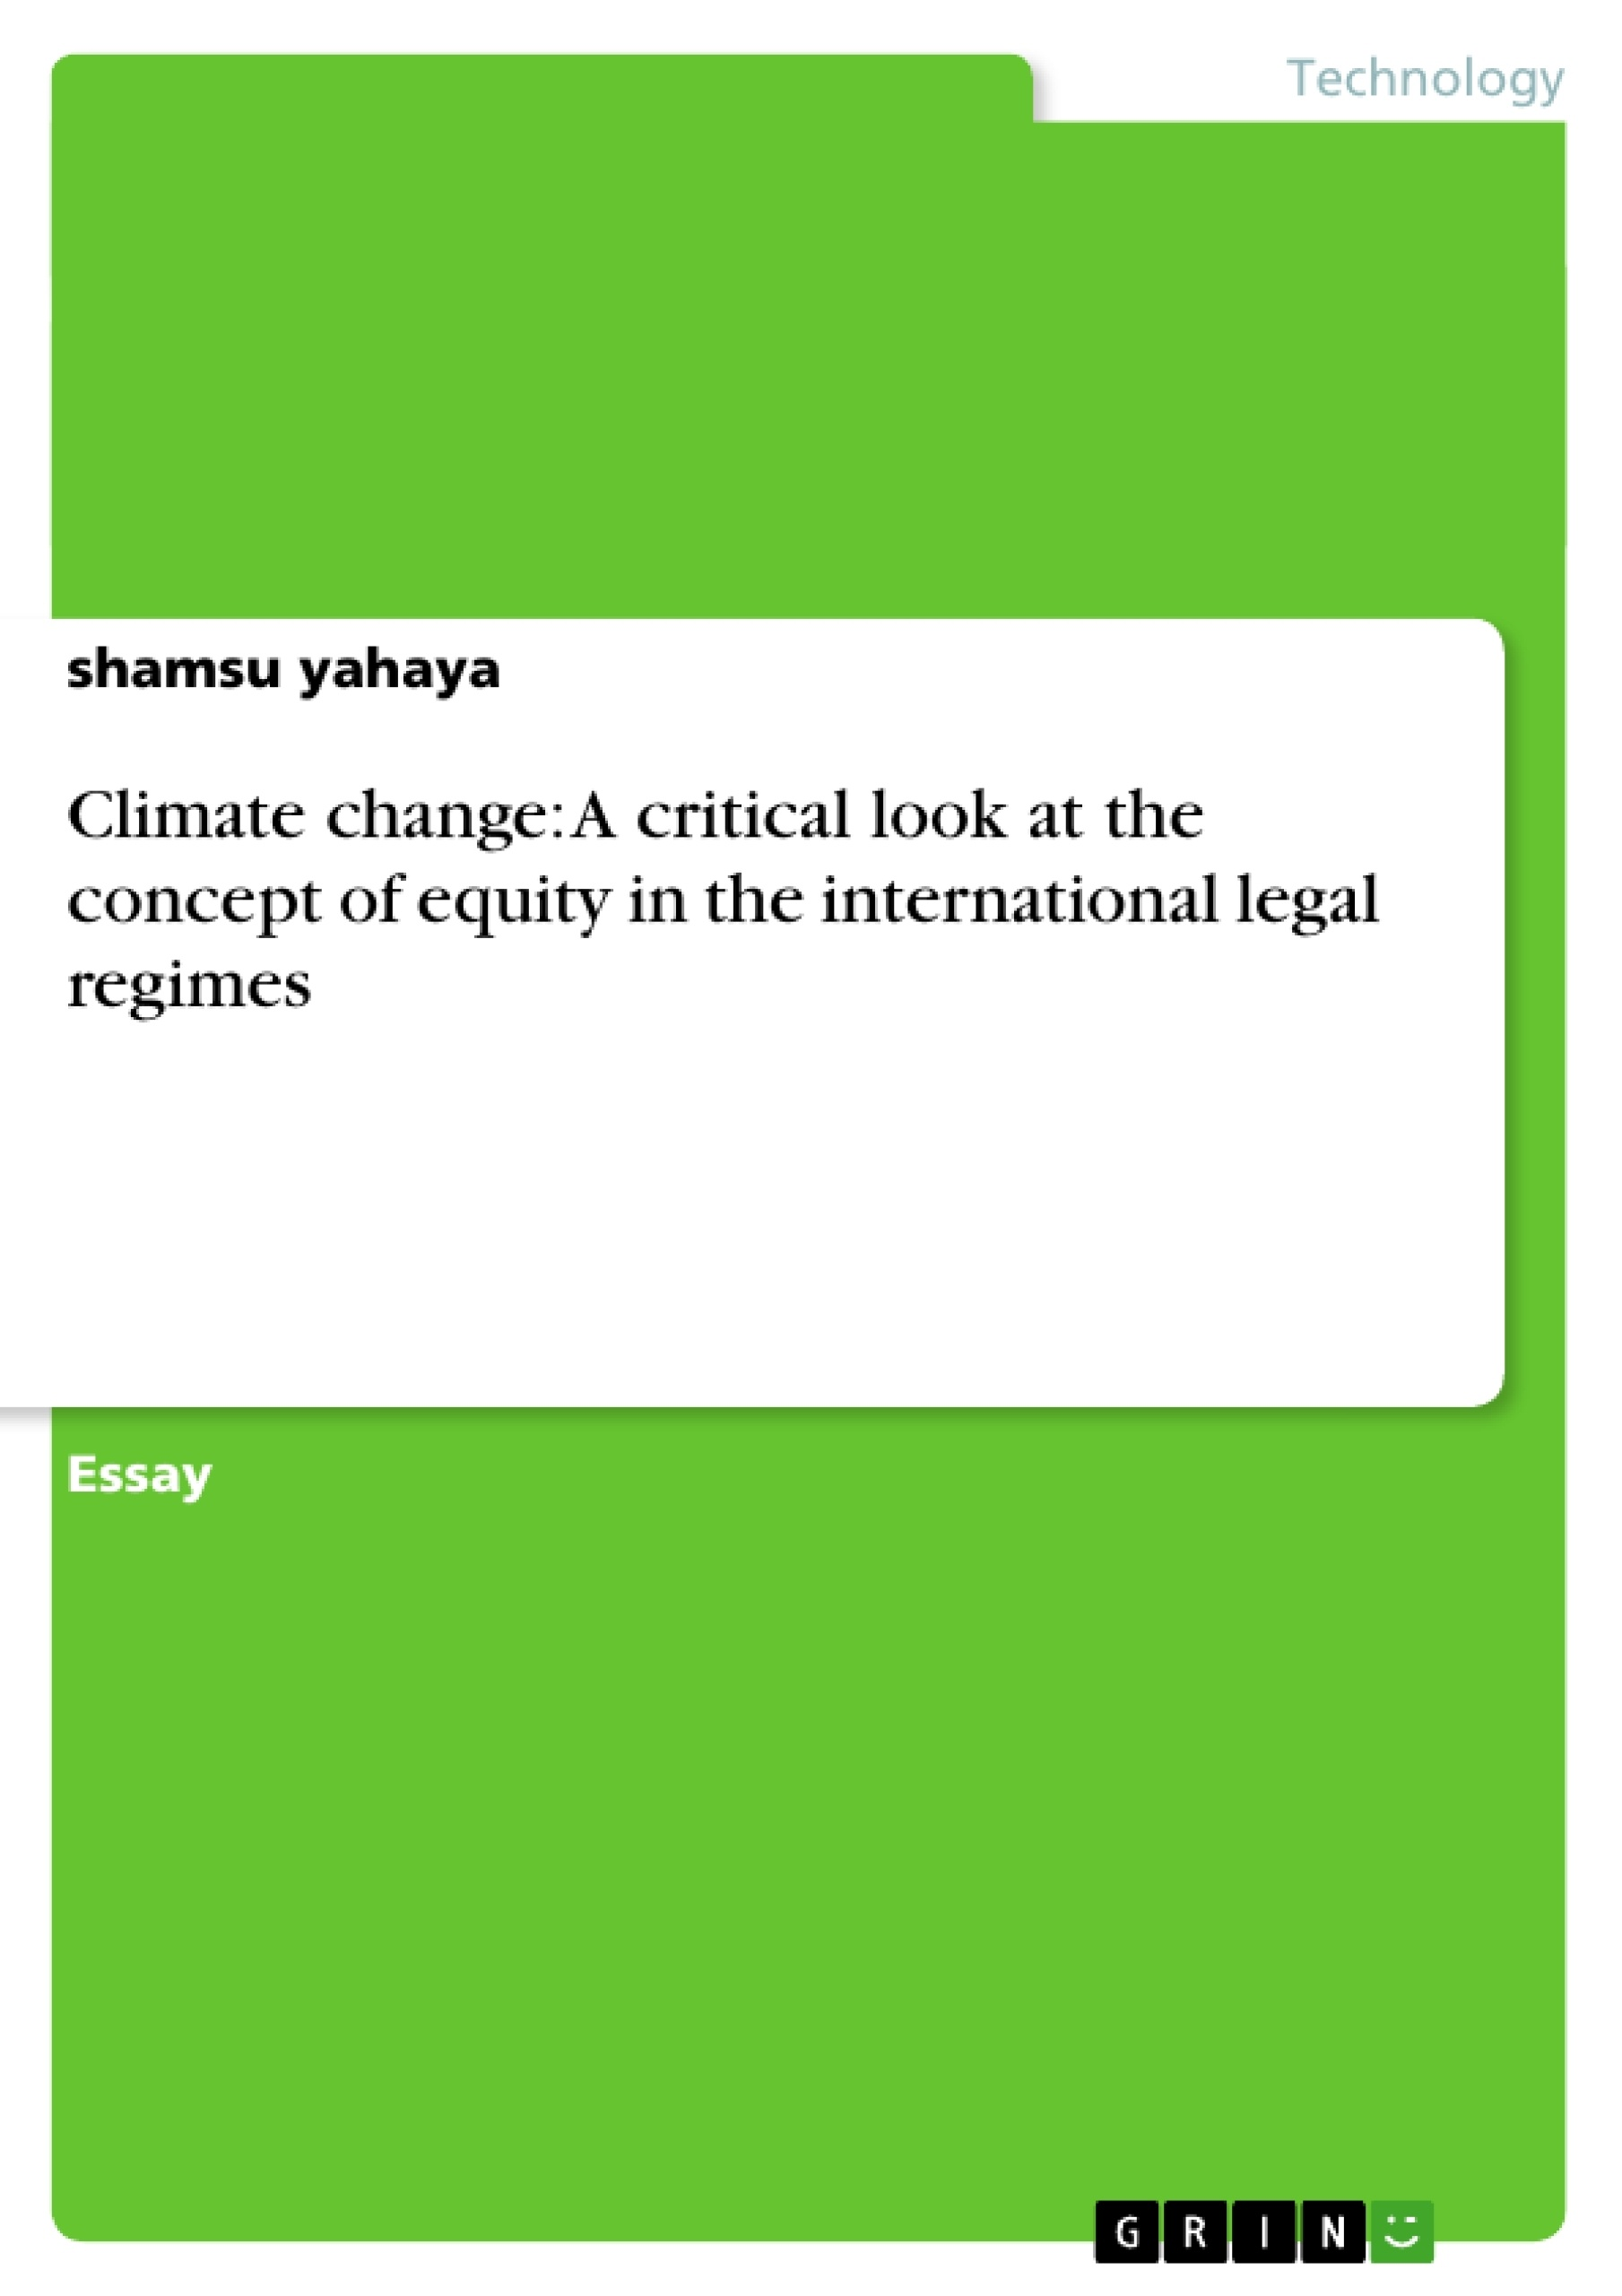 Title: Climate change: A critical look at the concept of equity in the international legal regimes